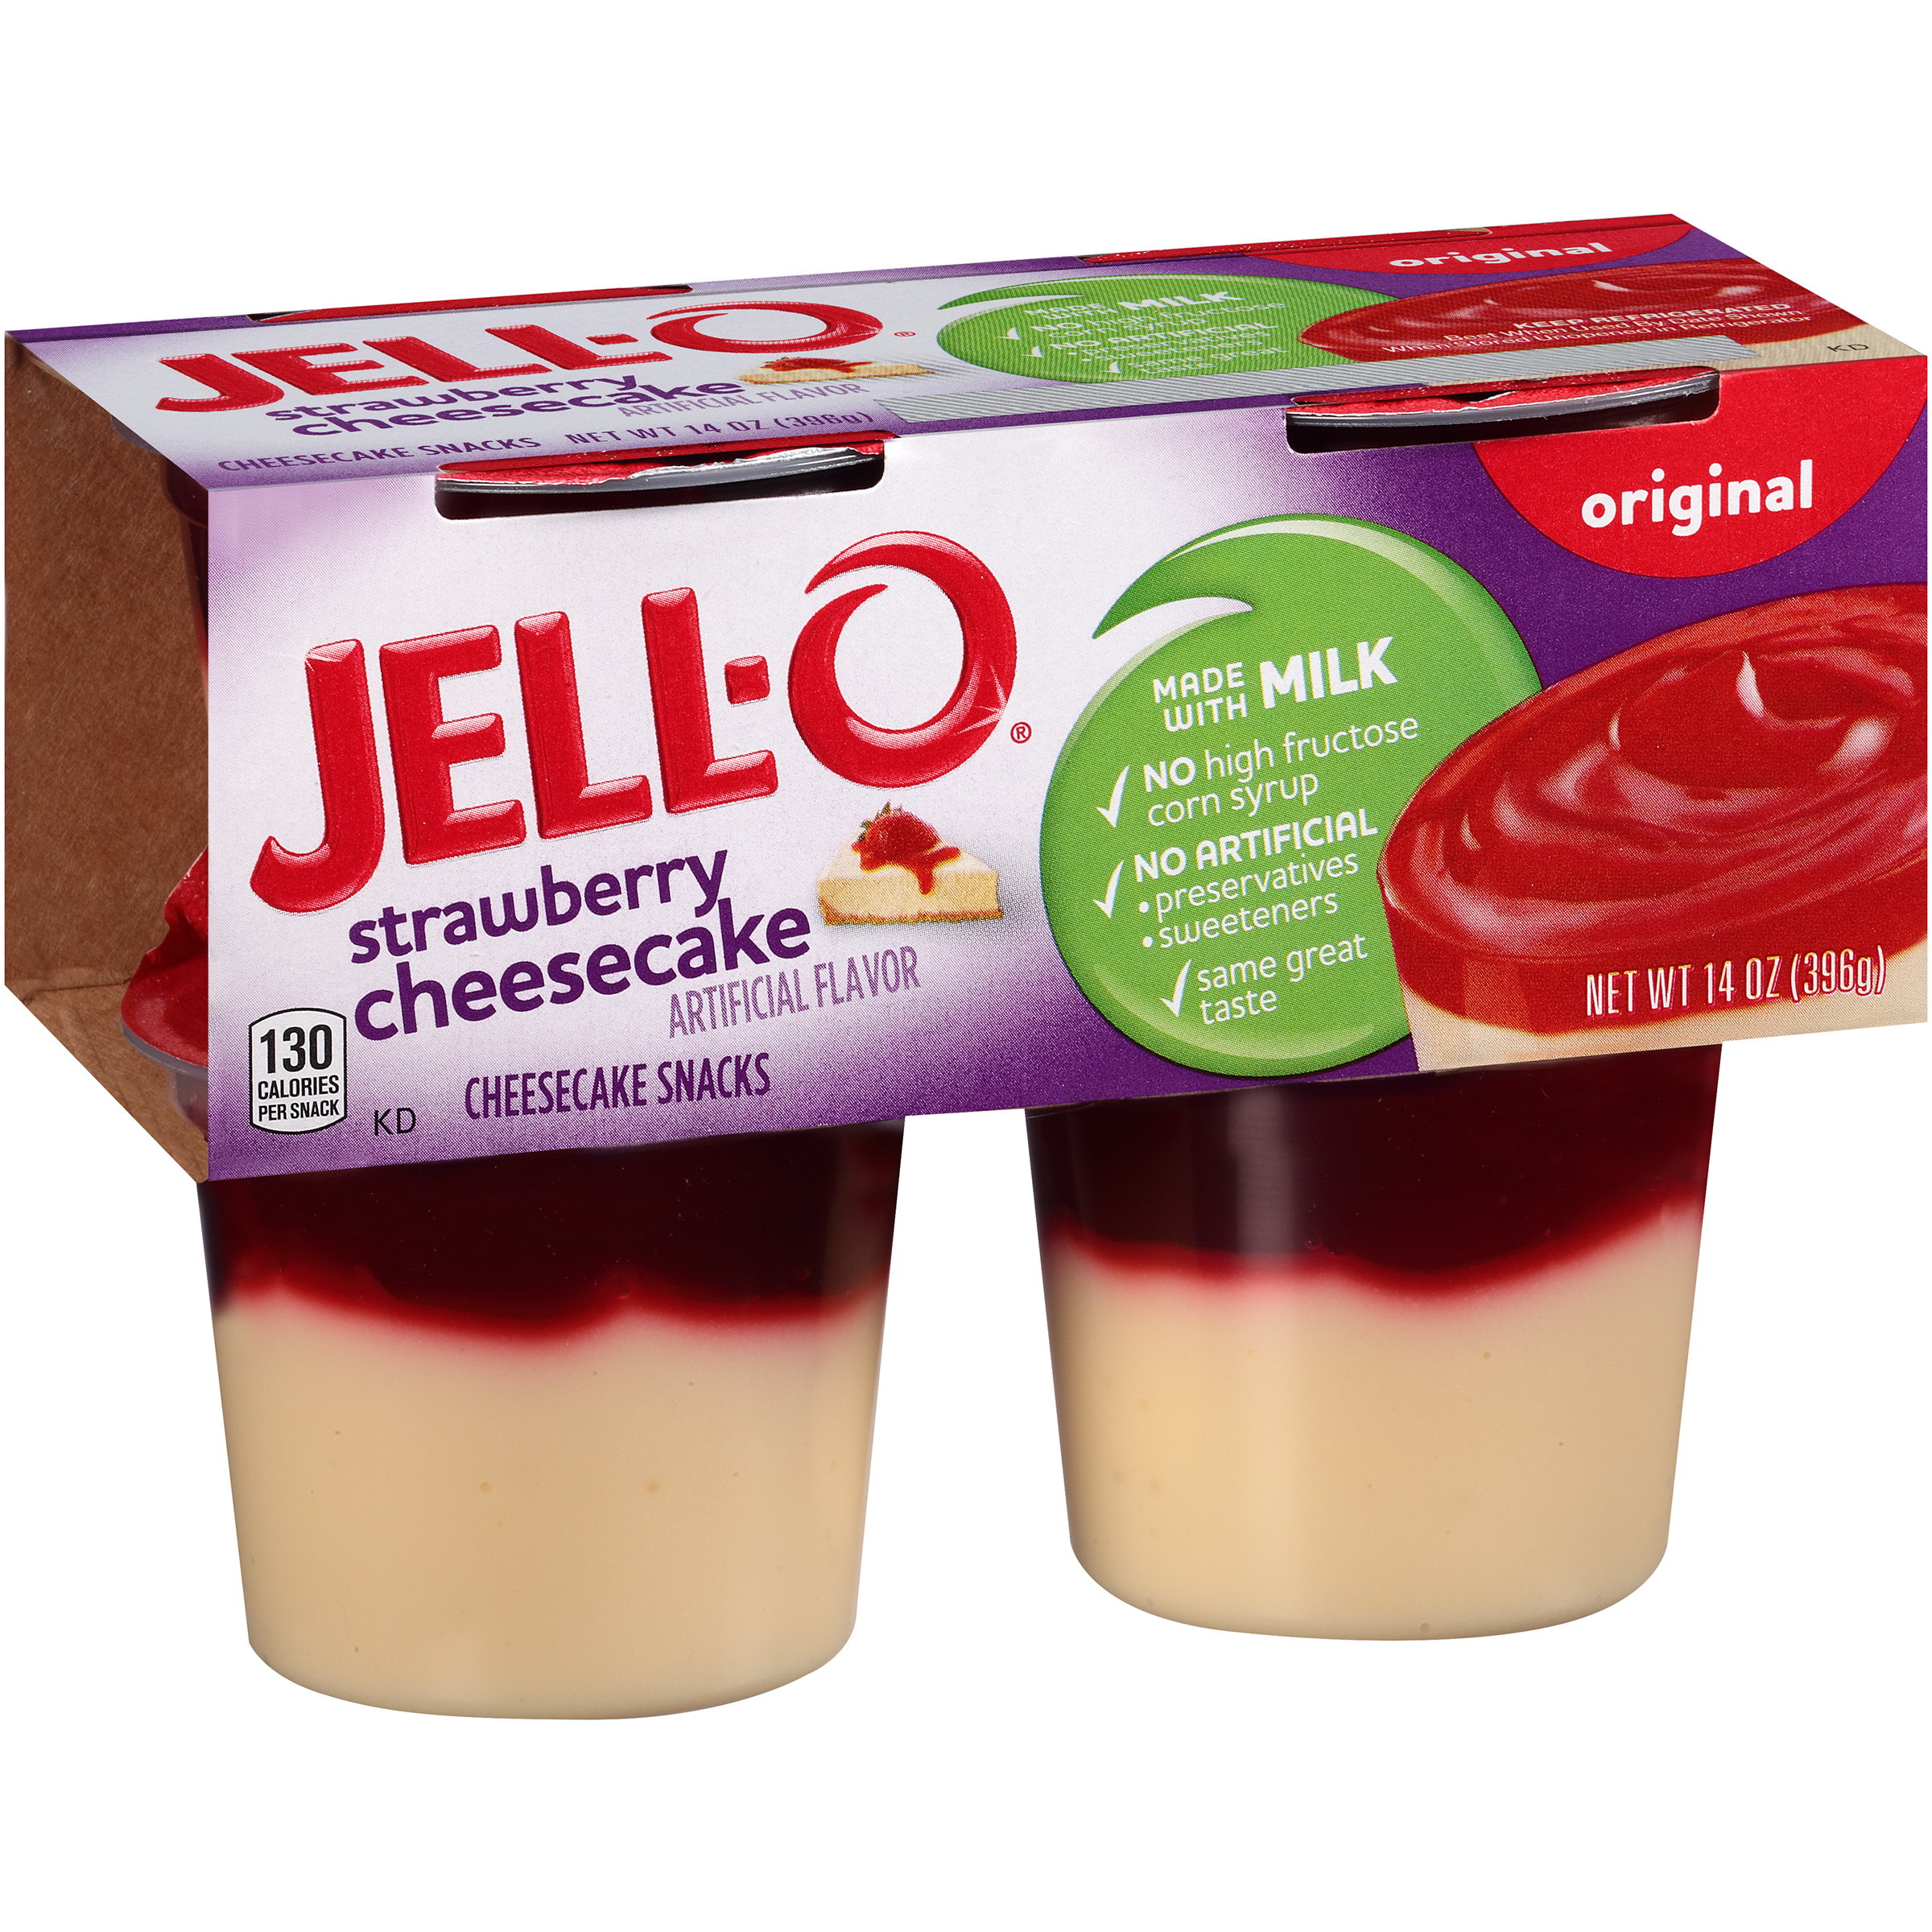 Jell-O Ready to Eat Strawberry Cheesecake Pudding Snack, 14 oz Sleeve (4 Cups)